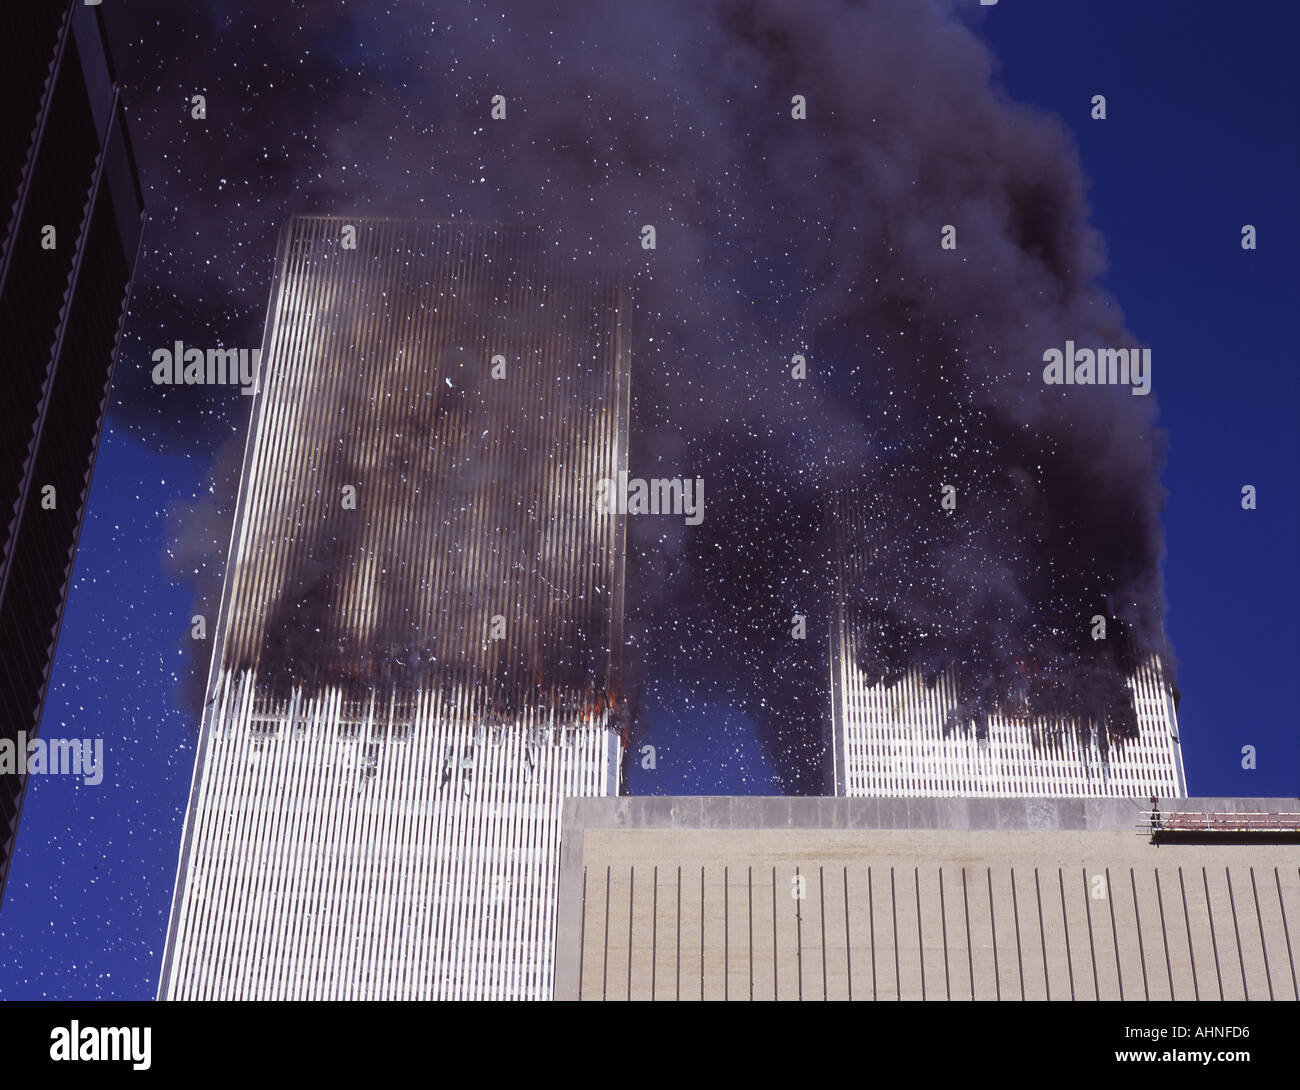 September 11 2001 the burning of the World Trade Center buildings as seen from east side of Manhattan - Stock Image